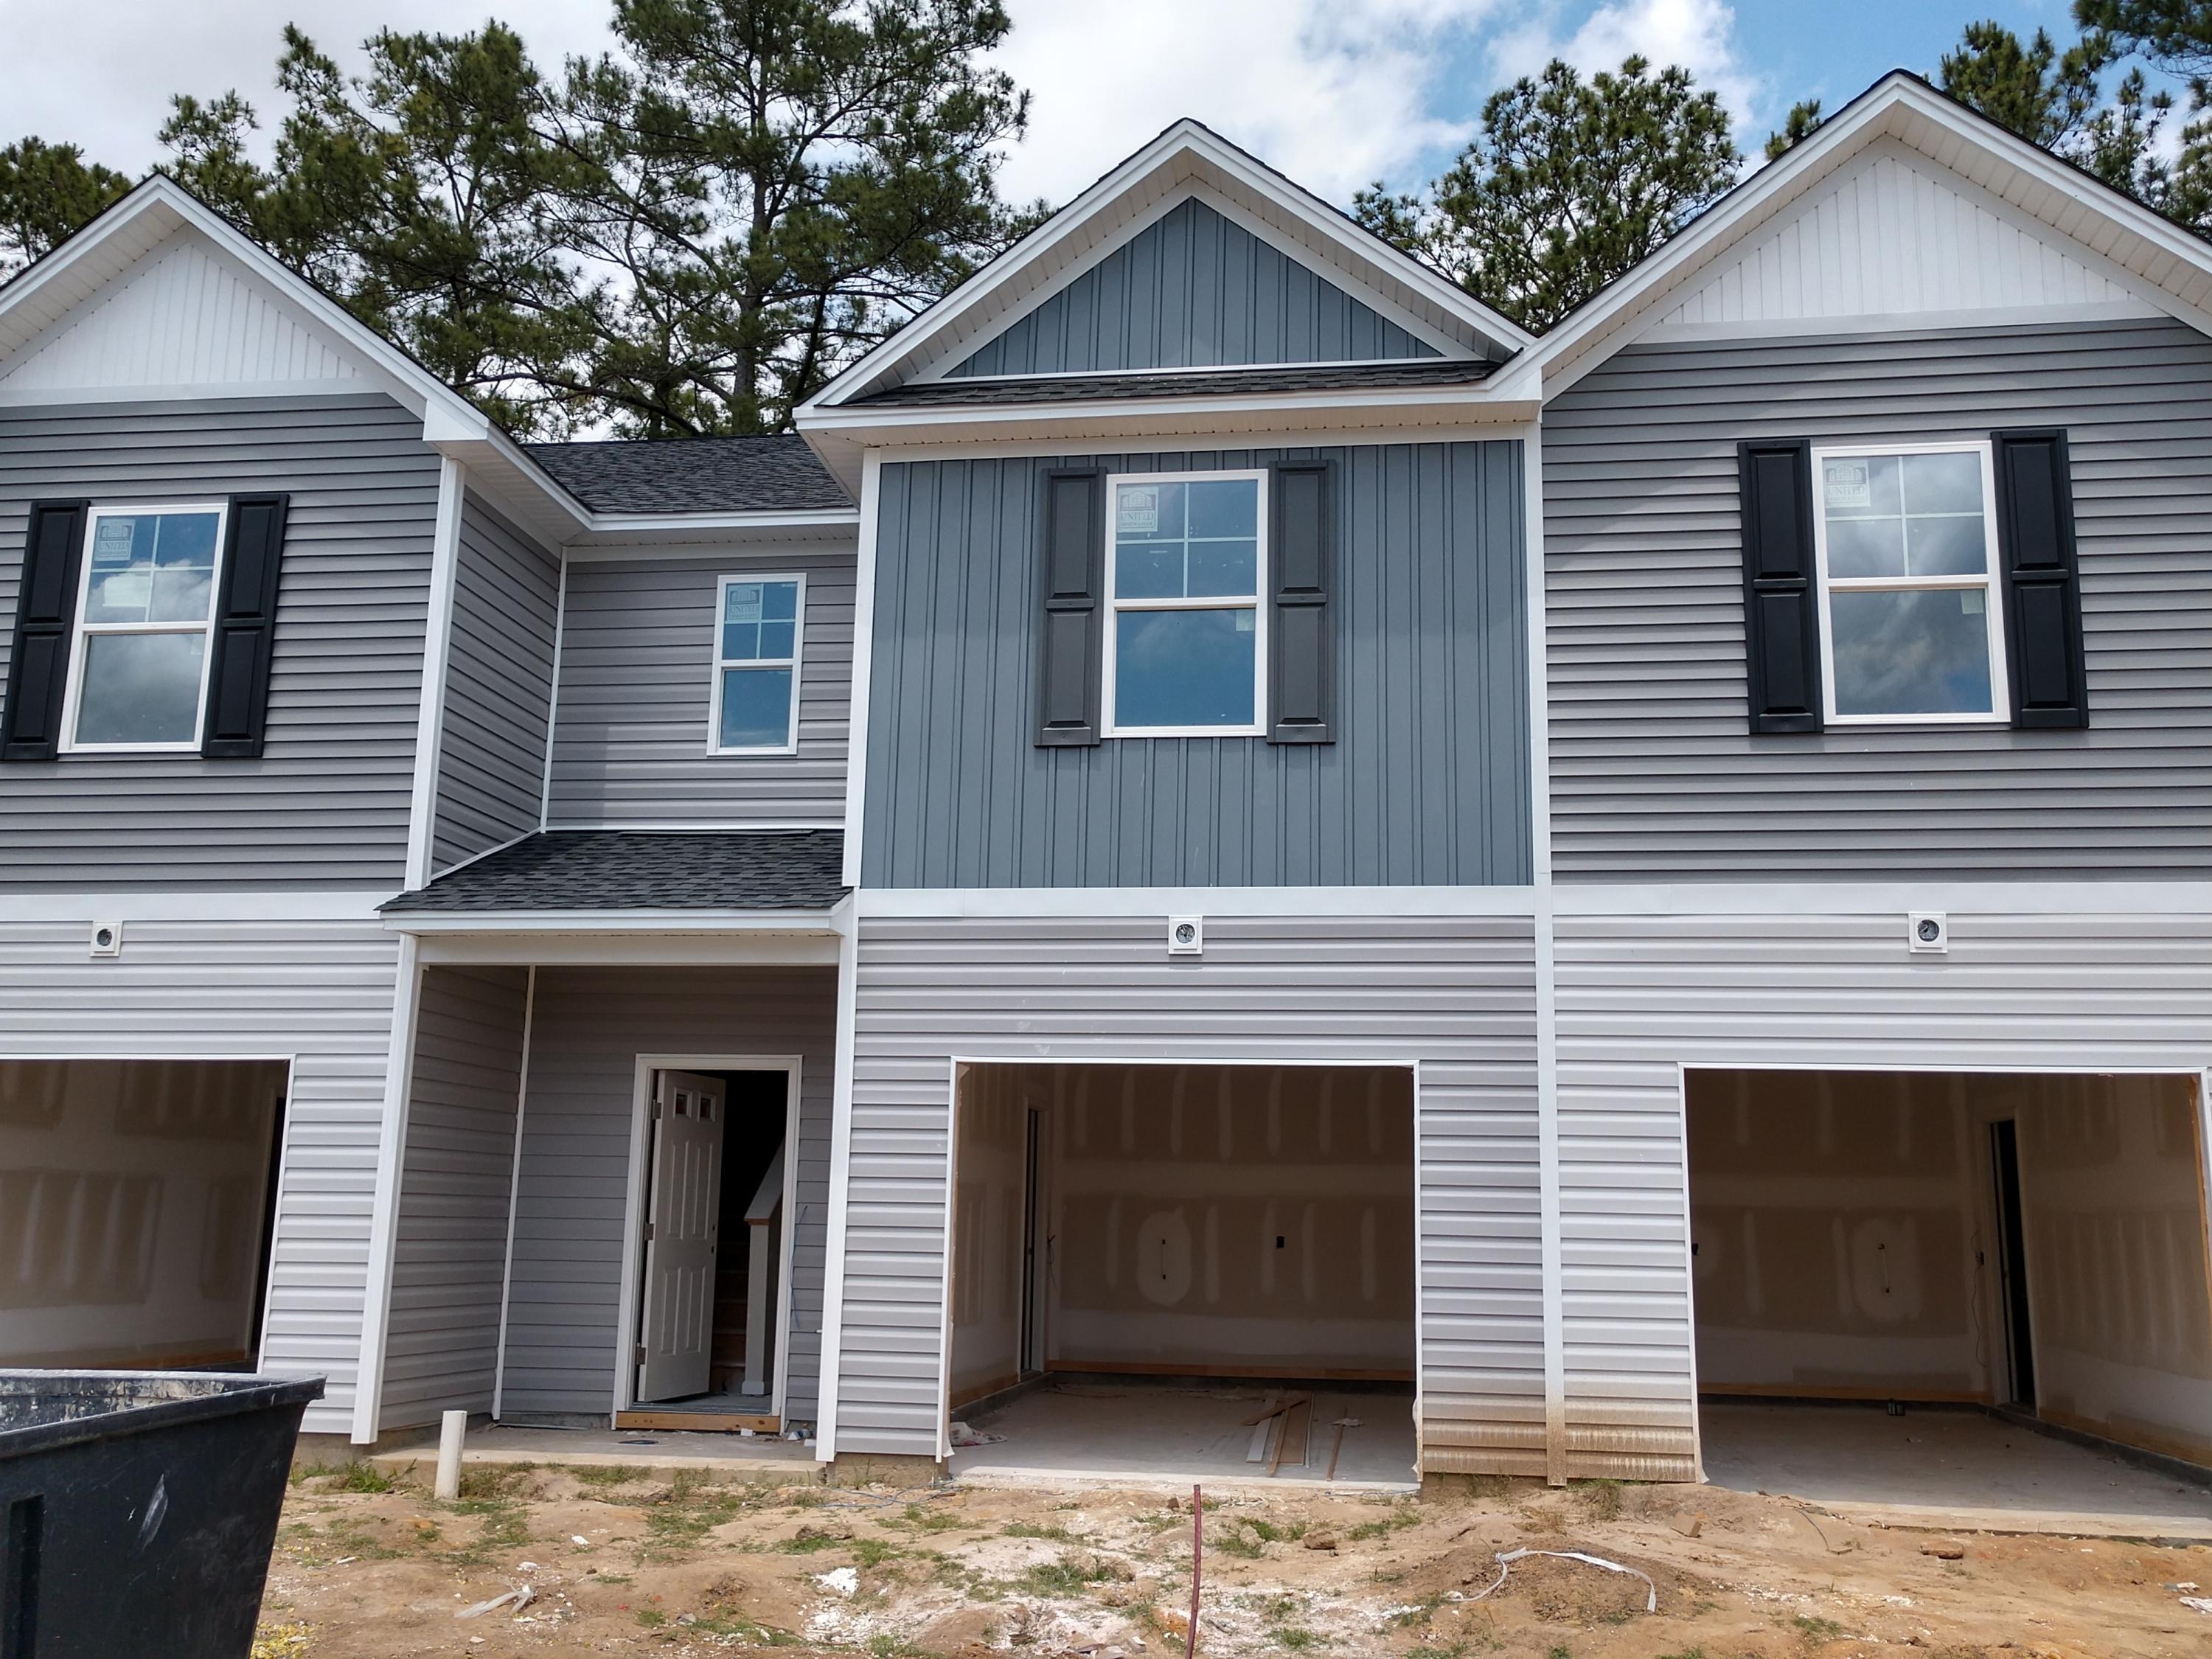 Lakeview Commons Homes For Sale - 152 Buchanan, Goose Creek, SC - 0